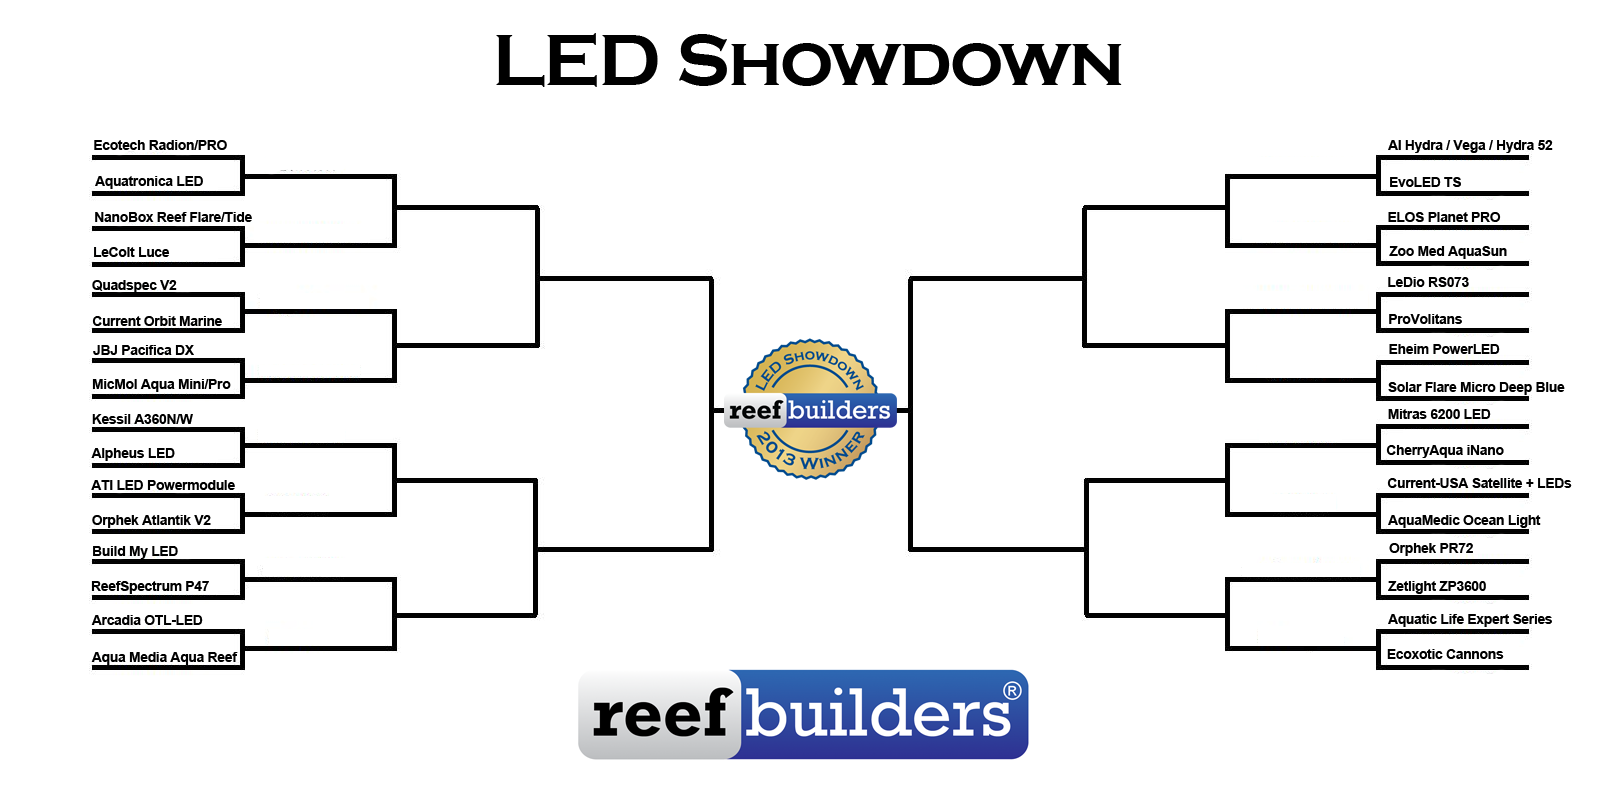 led-showdown-2013-rd1.png